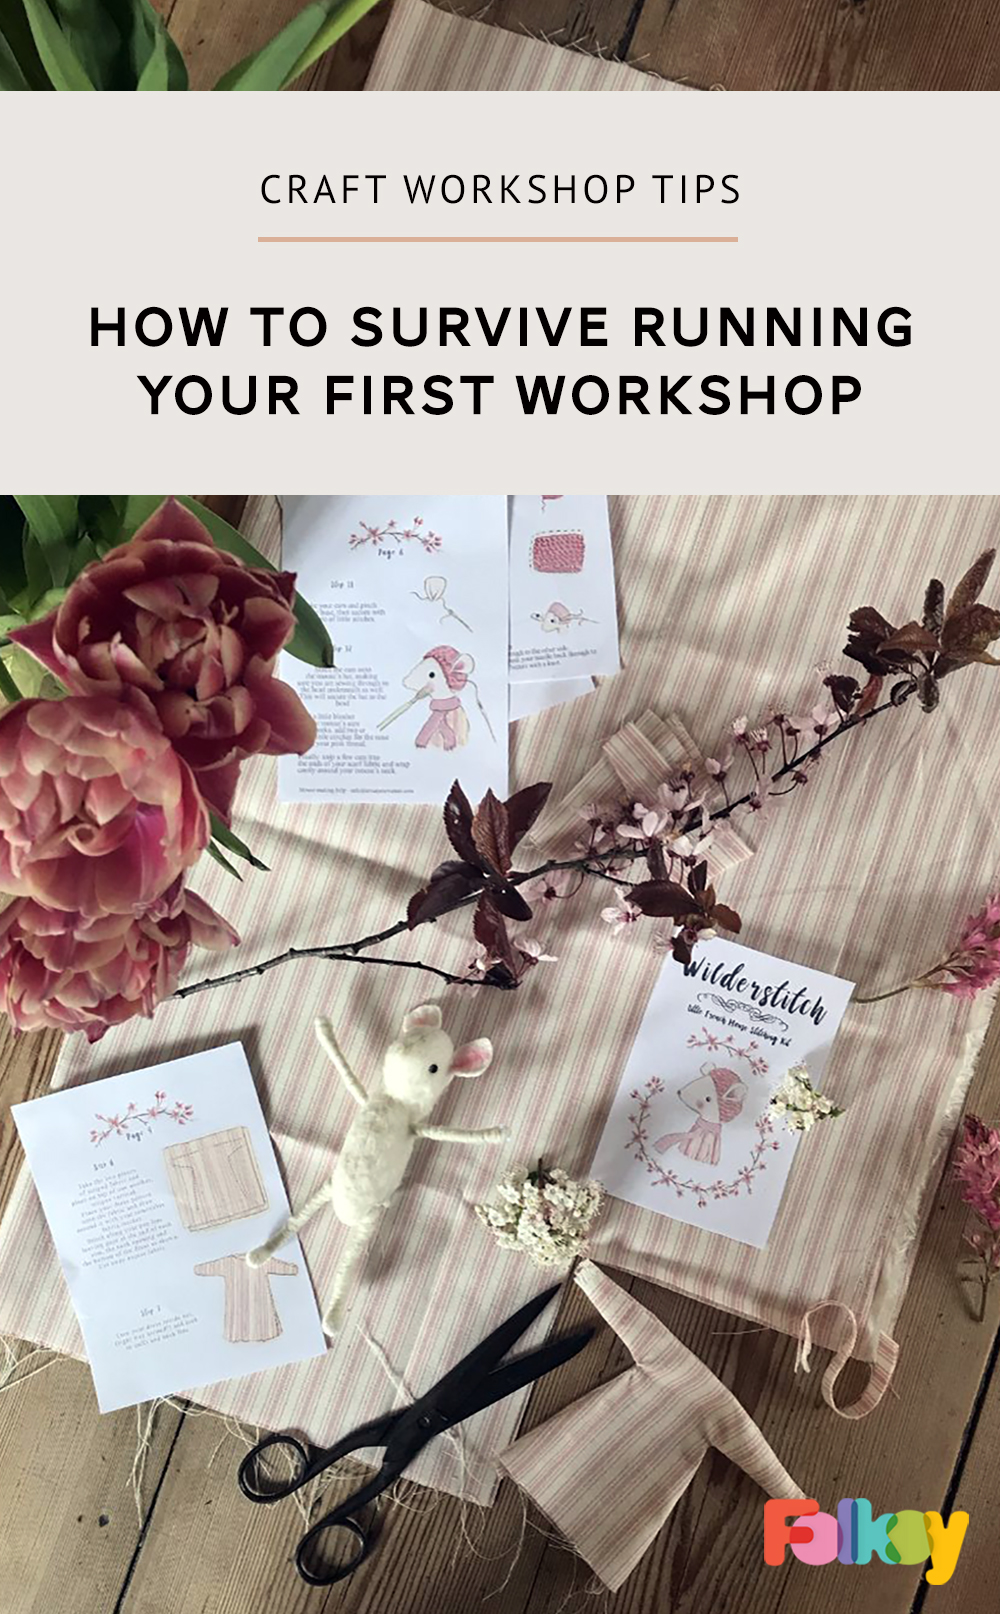 How to survive your first craft workshop